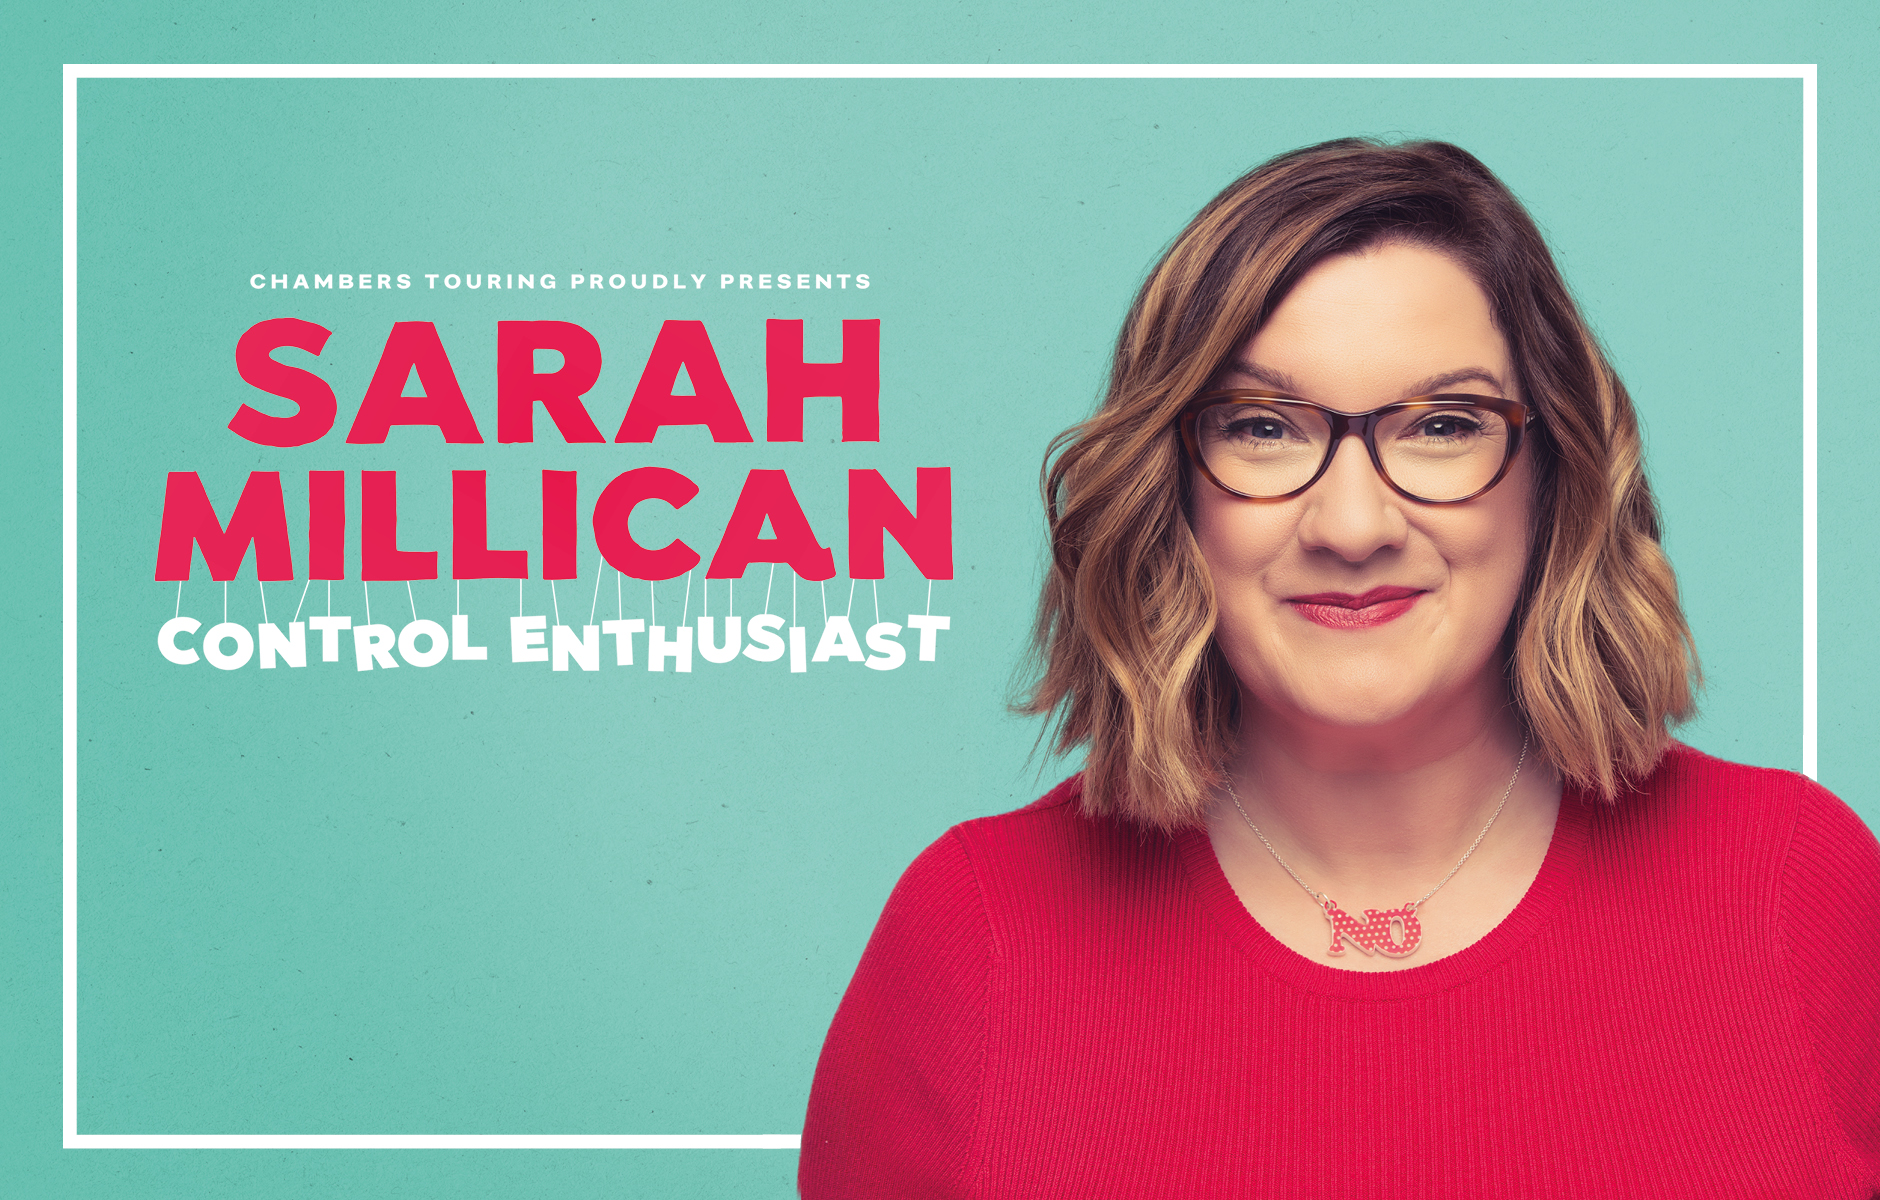 Sarah Millican is not a control freak, she's a control enthusiast.